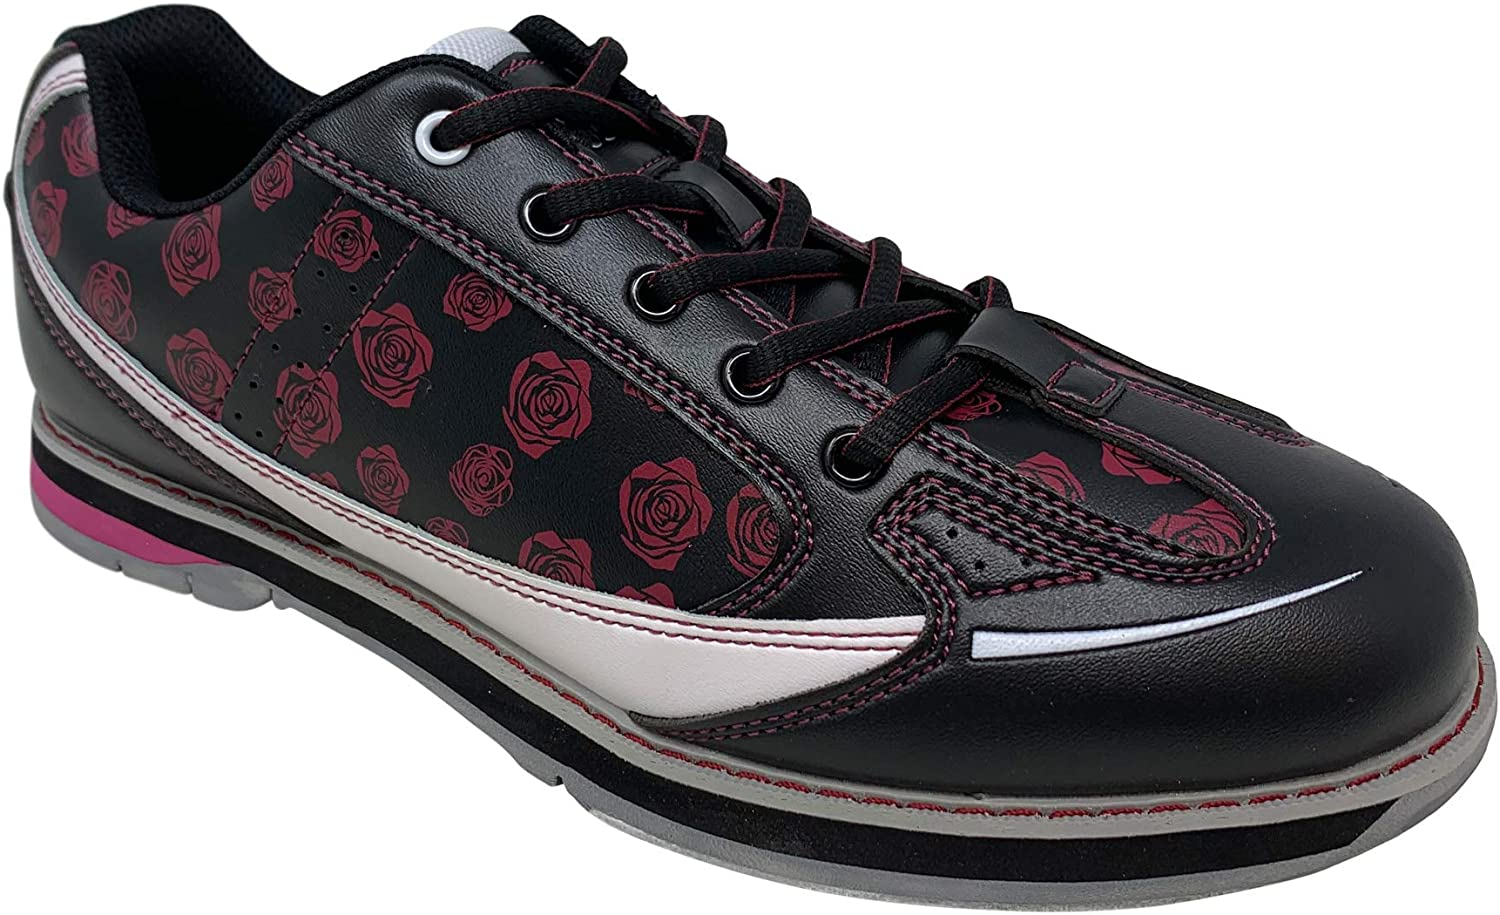 SaVi Bowling Products Women's Red Rose